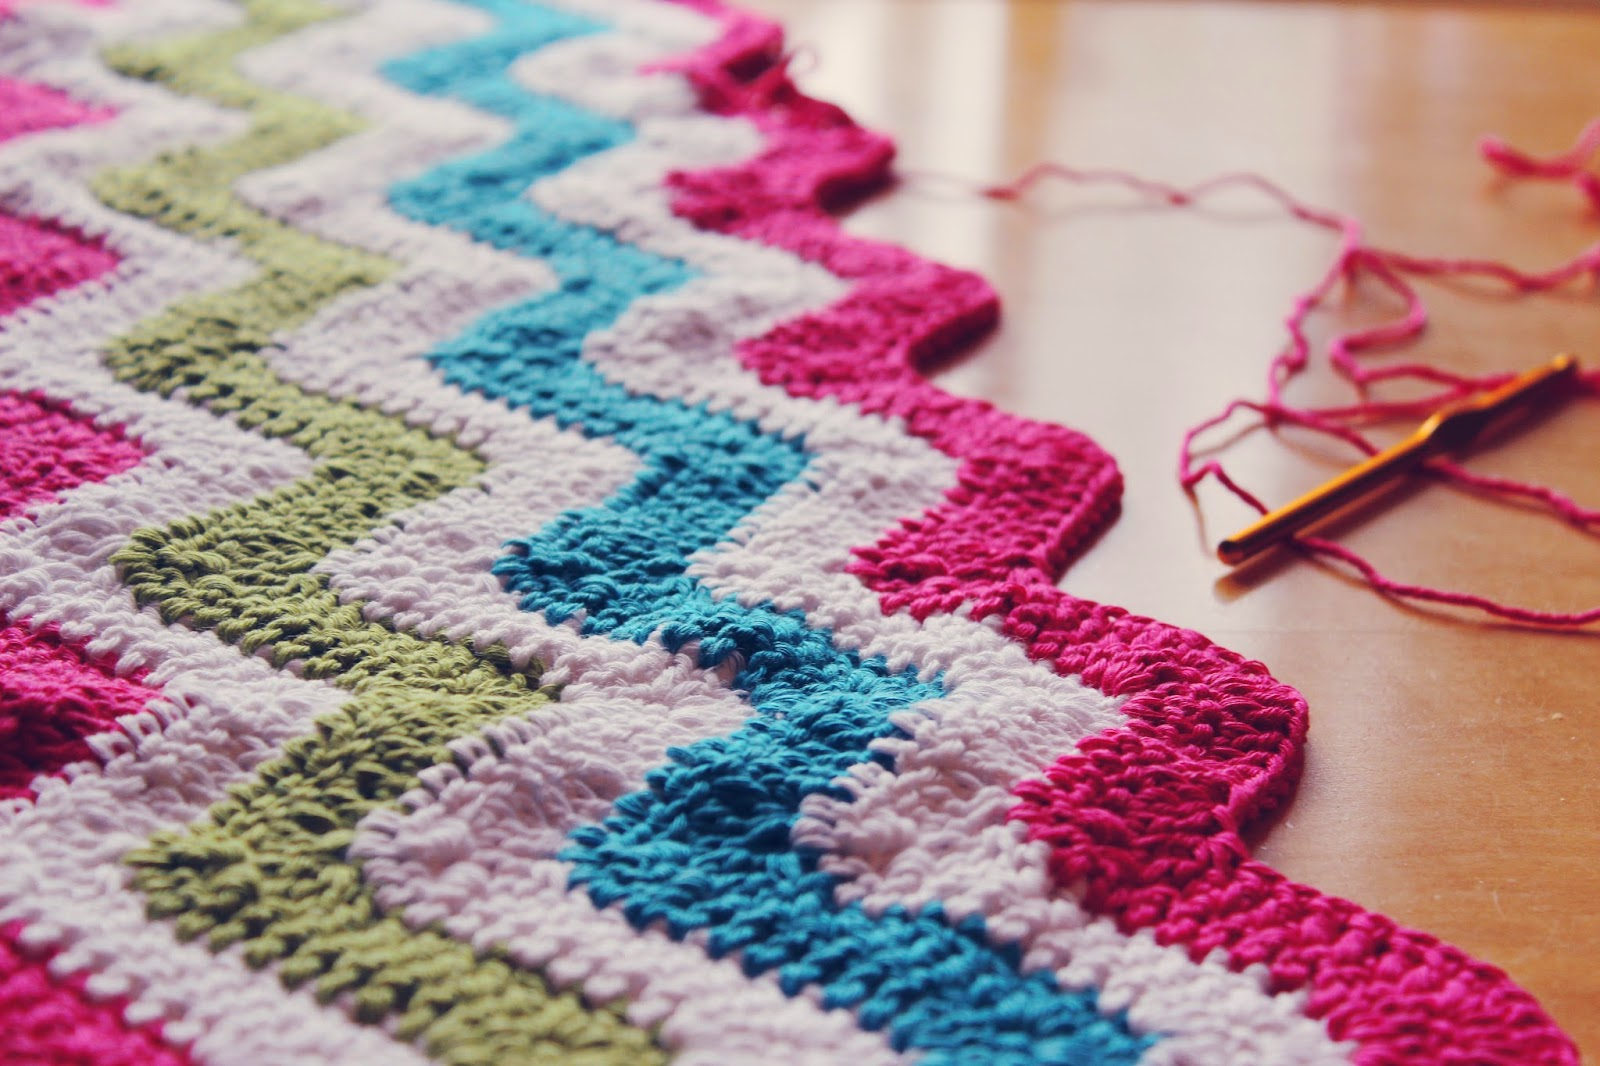 Misadventures of alice the perfect crochet ripple blanket pattern the perfect crochet ripple blanket pattern bankloansurffo Images